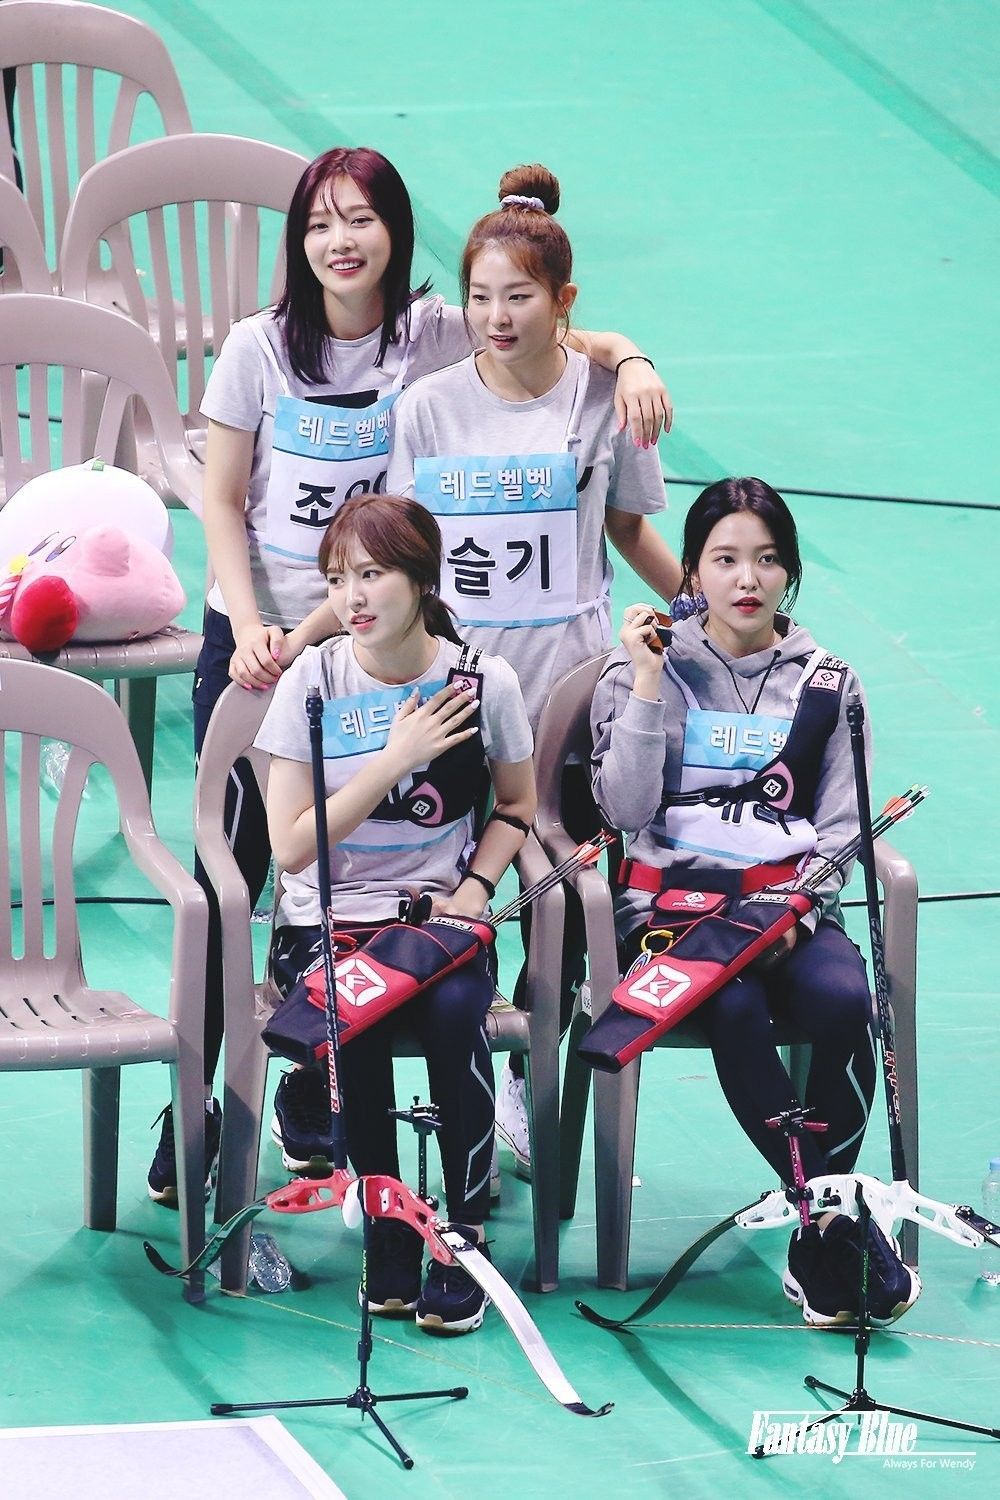 RED VELVET ♥️ Isac | red velvet ❤️ in 2019 | Red velvet, Red